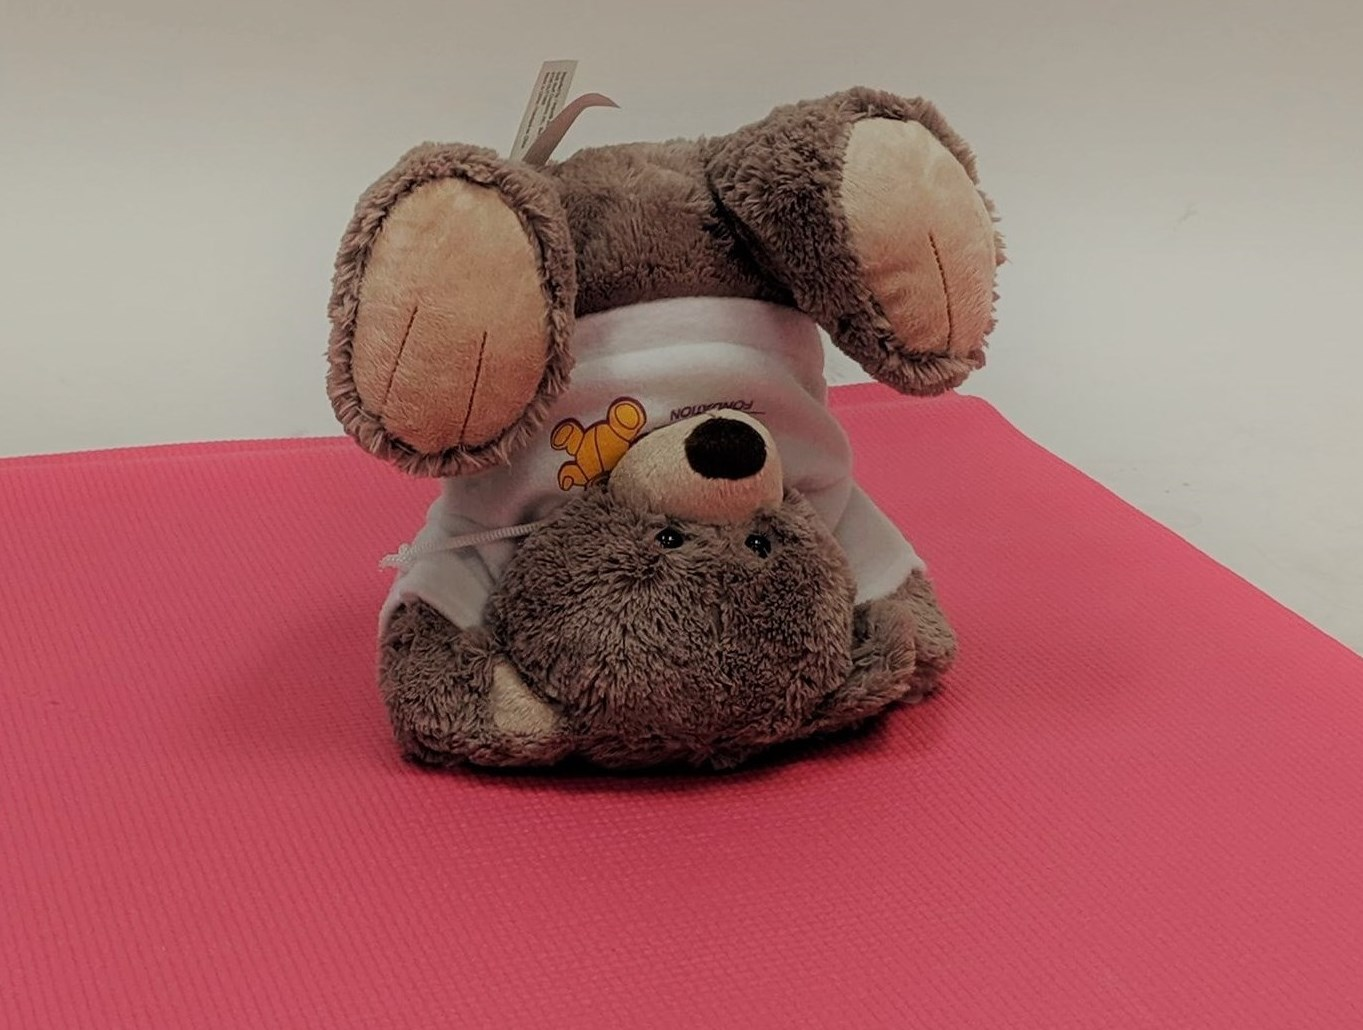 CHEO bear doing a headstand on a yoga mat